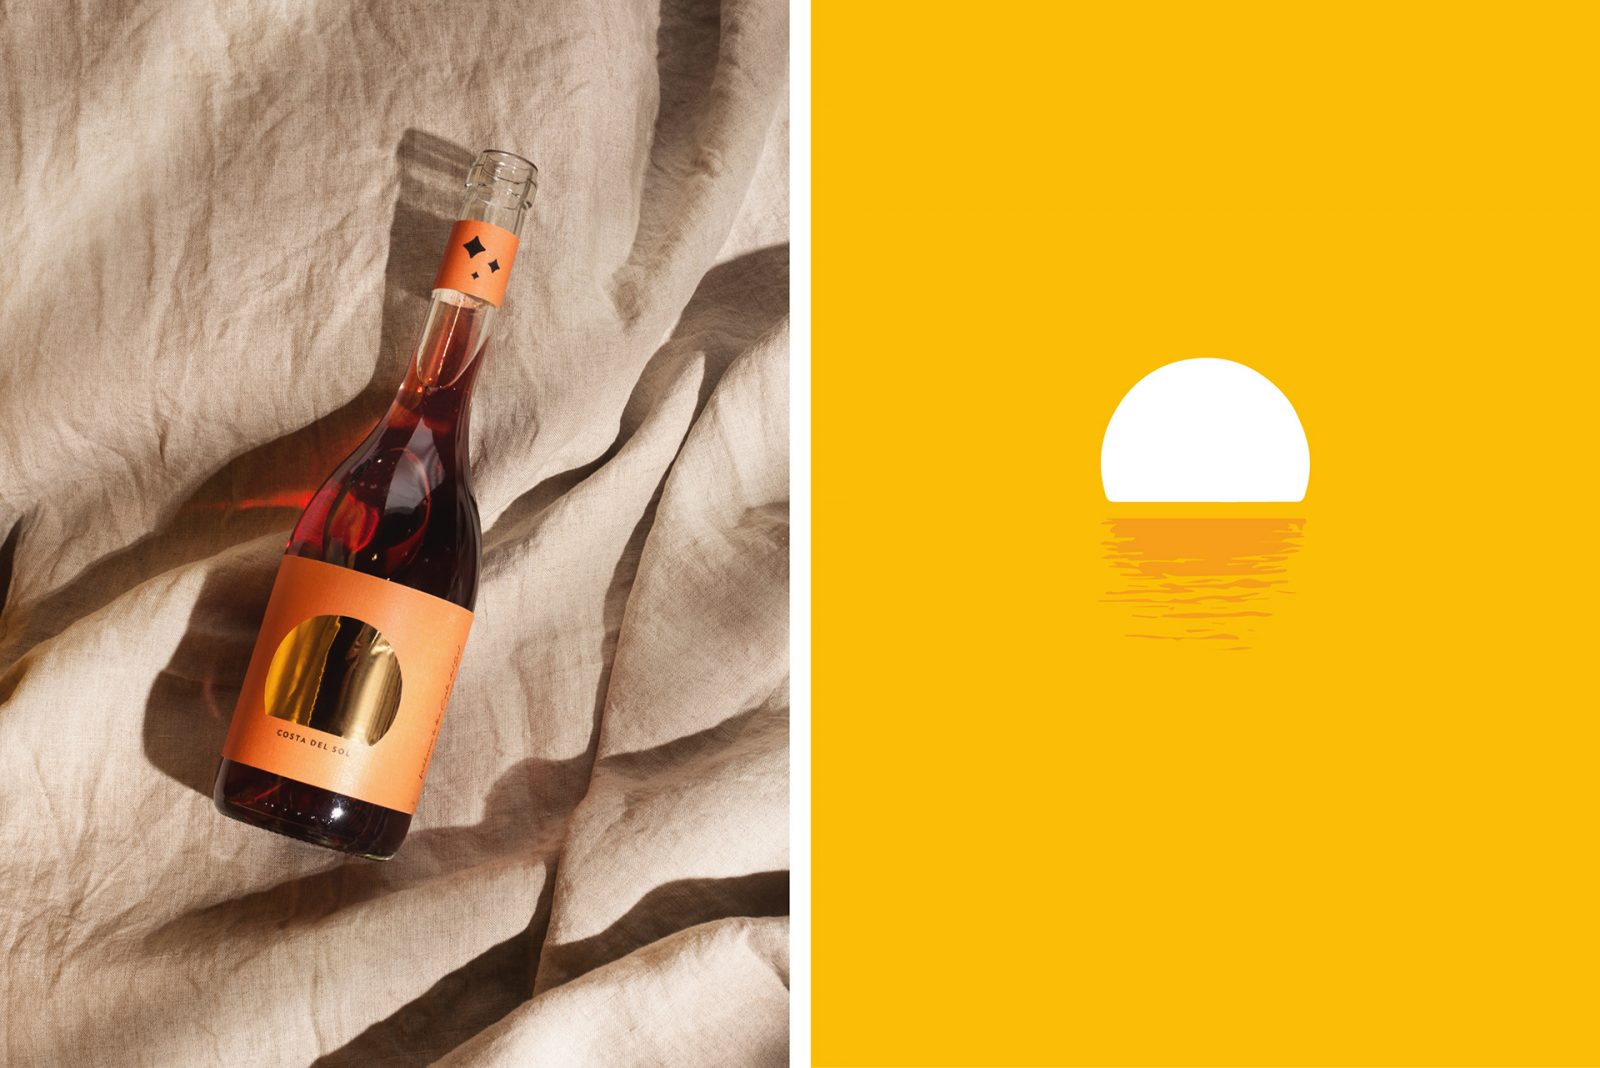 Paraiso Marbella by Unifikat Brings Sunshine in a Bottle